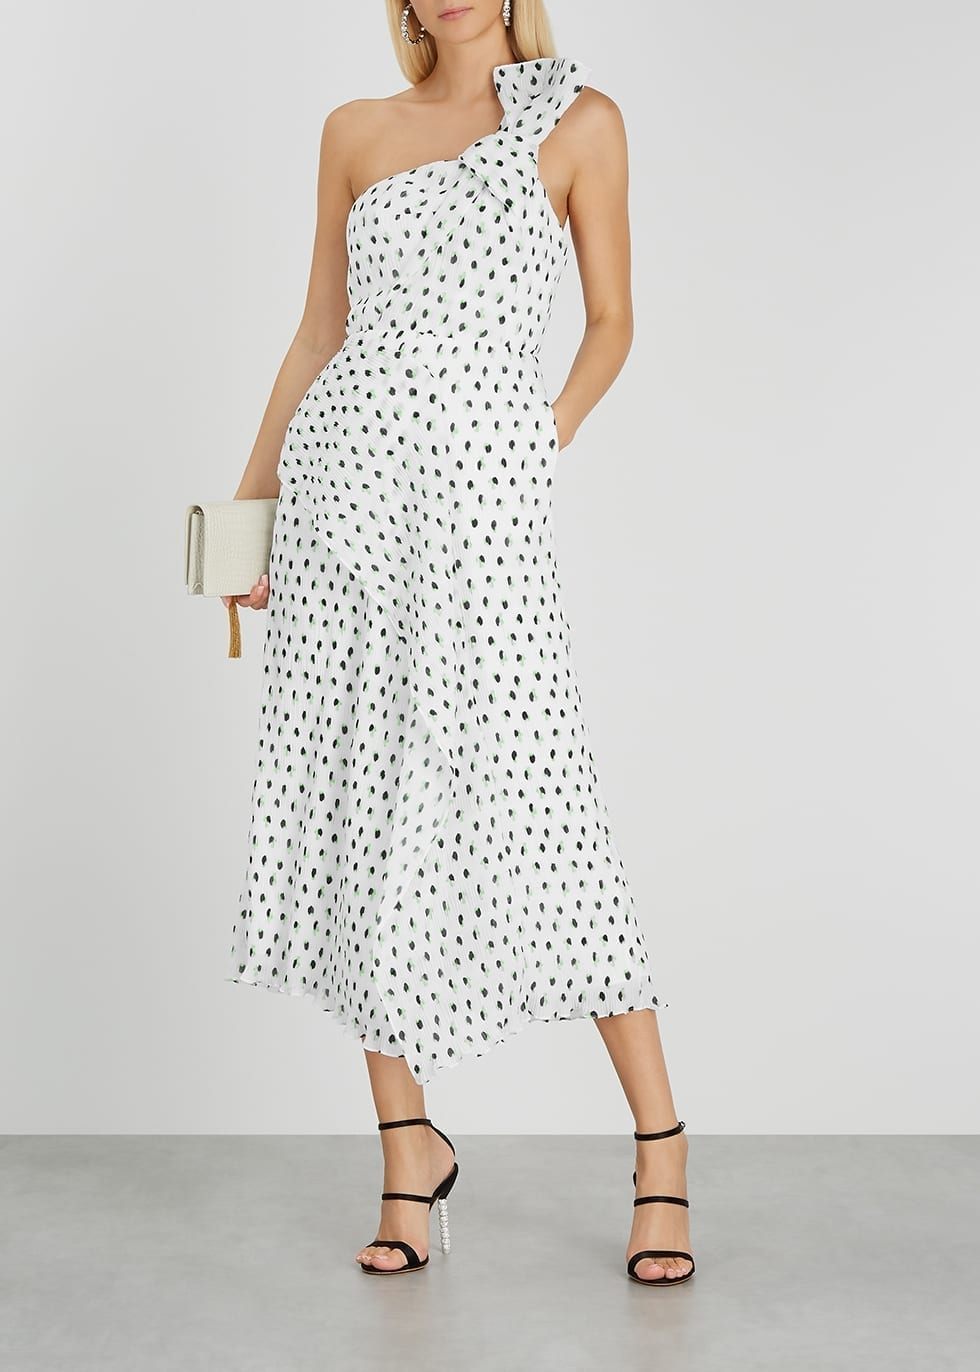 ROLAND MOURET Giza White Polka-dot Plissé Midi Dress